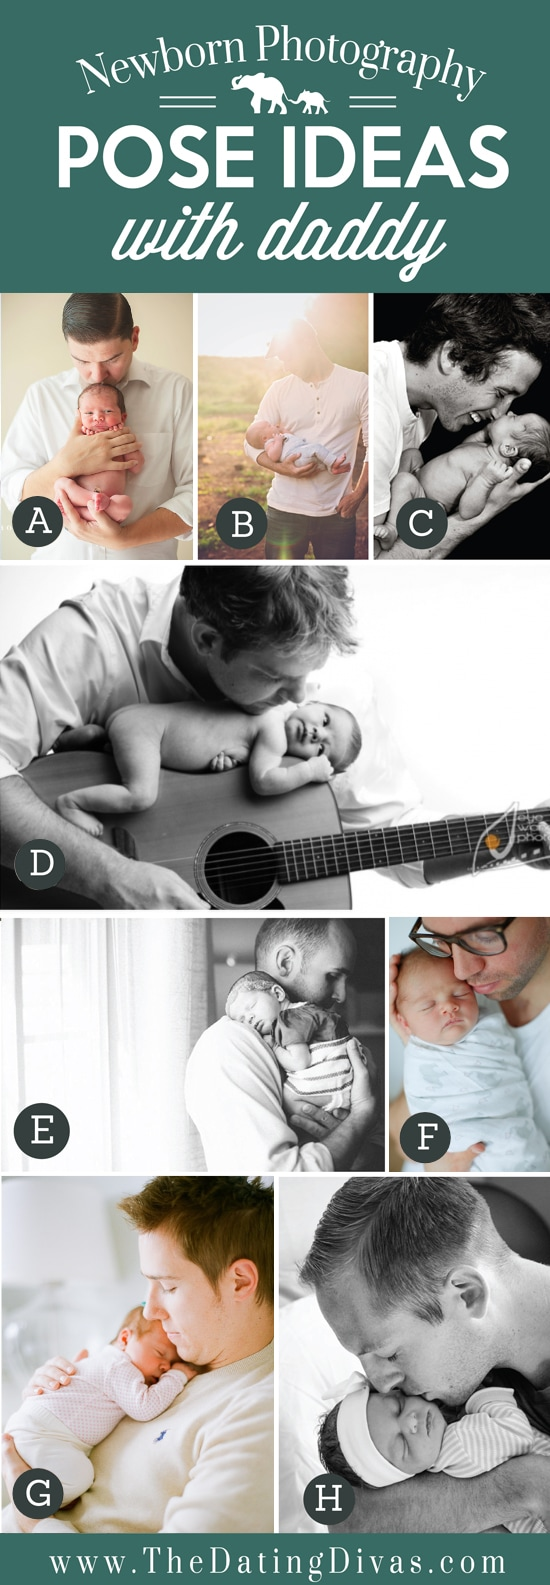 20 newborn photography pose ideas